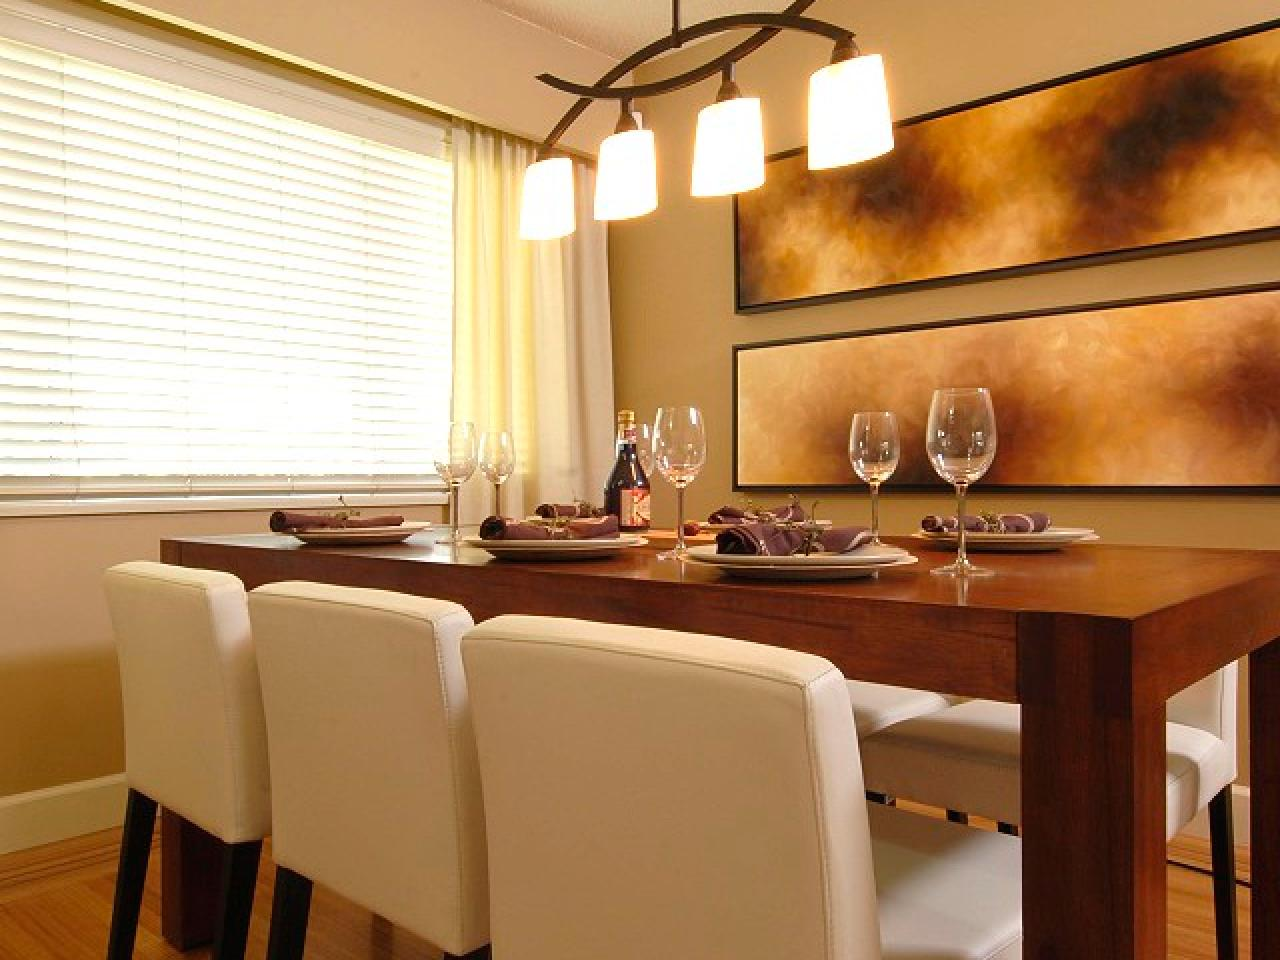 lighting designs for homes. top 10 rules for staging homes from the stagers lighting designs